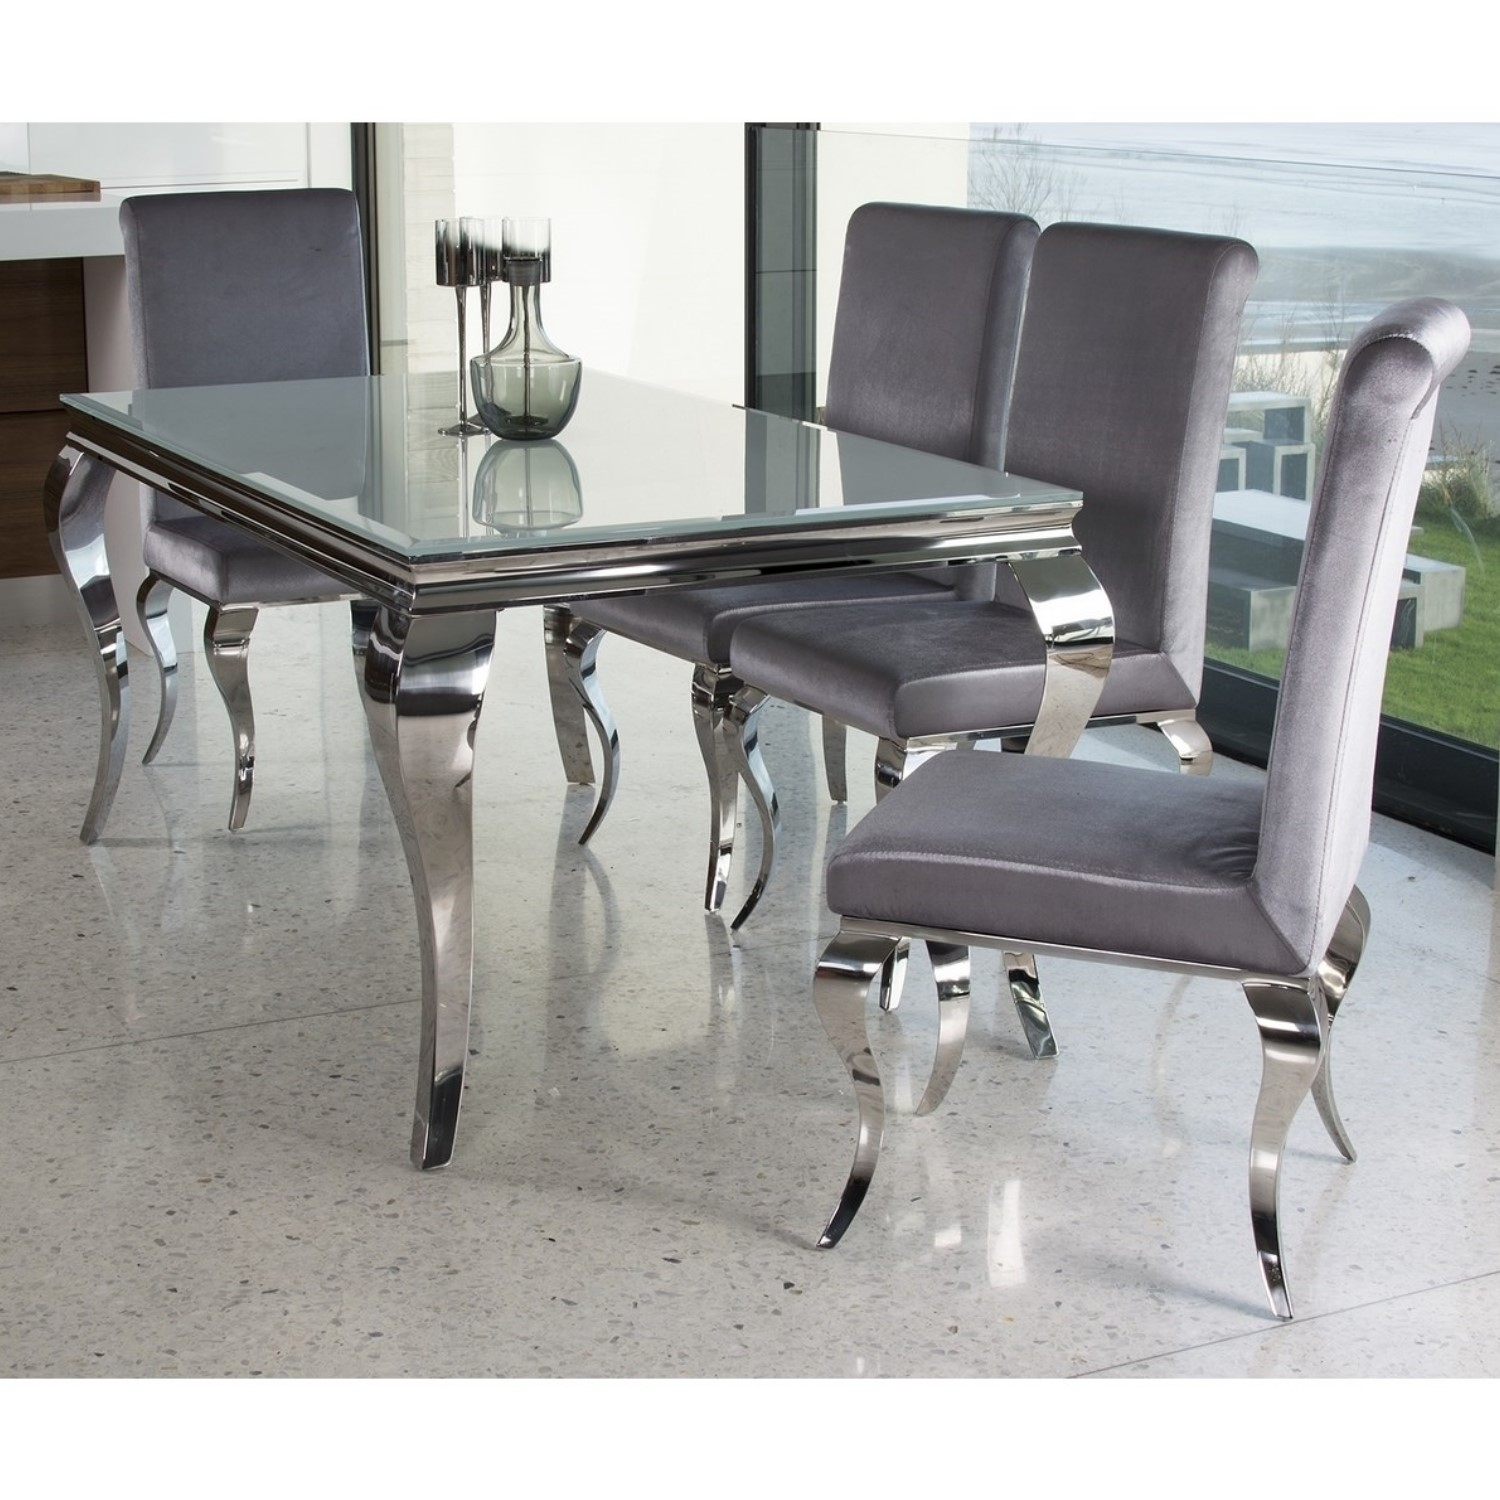 Louis Mirrored Dining Set with White 160cm Table u0026&; 4 Silver Velvet Chairs - Vida & Louis Mirrored Dining Set with White 160cm Table u0026 4 Silver Velvet ...